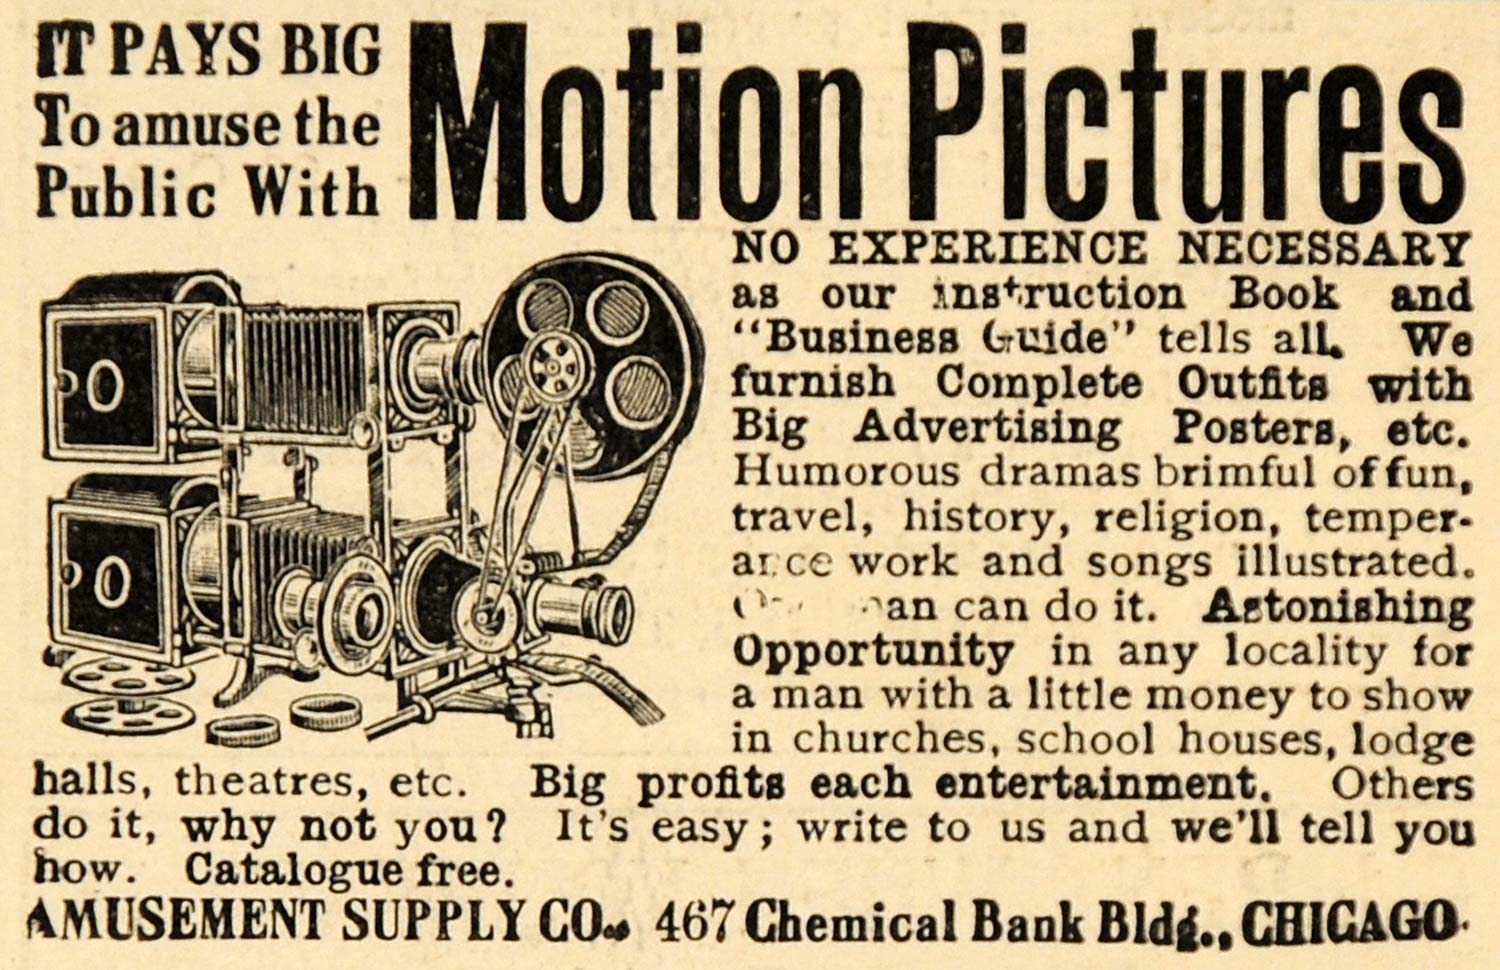 1907 Ad Amusement Supply Co. Motion Pictures Device - ORIGINAL ADVERTISING SCA2